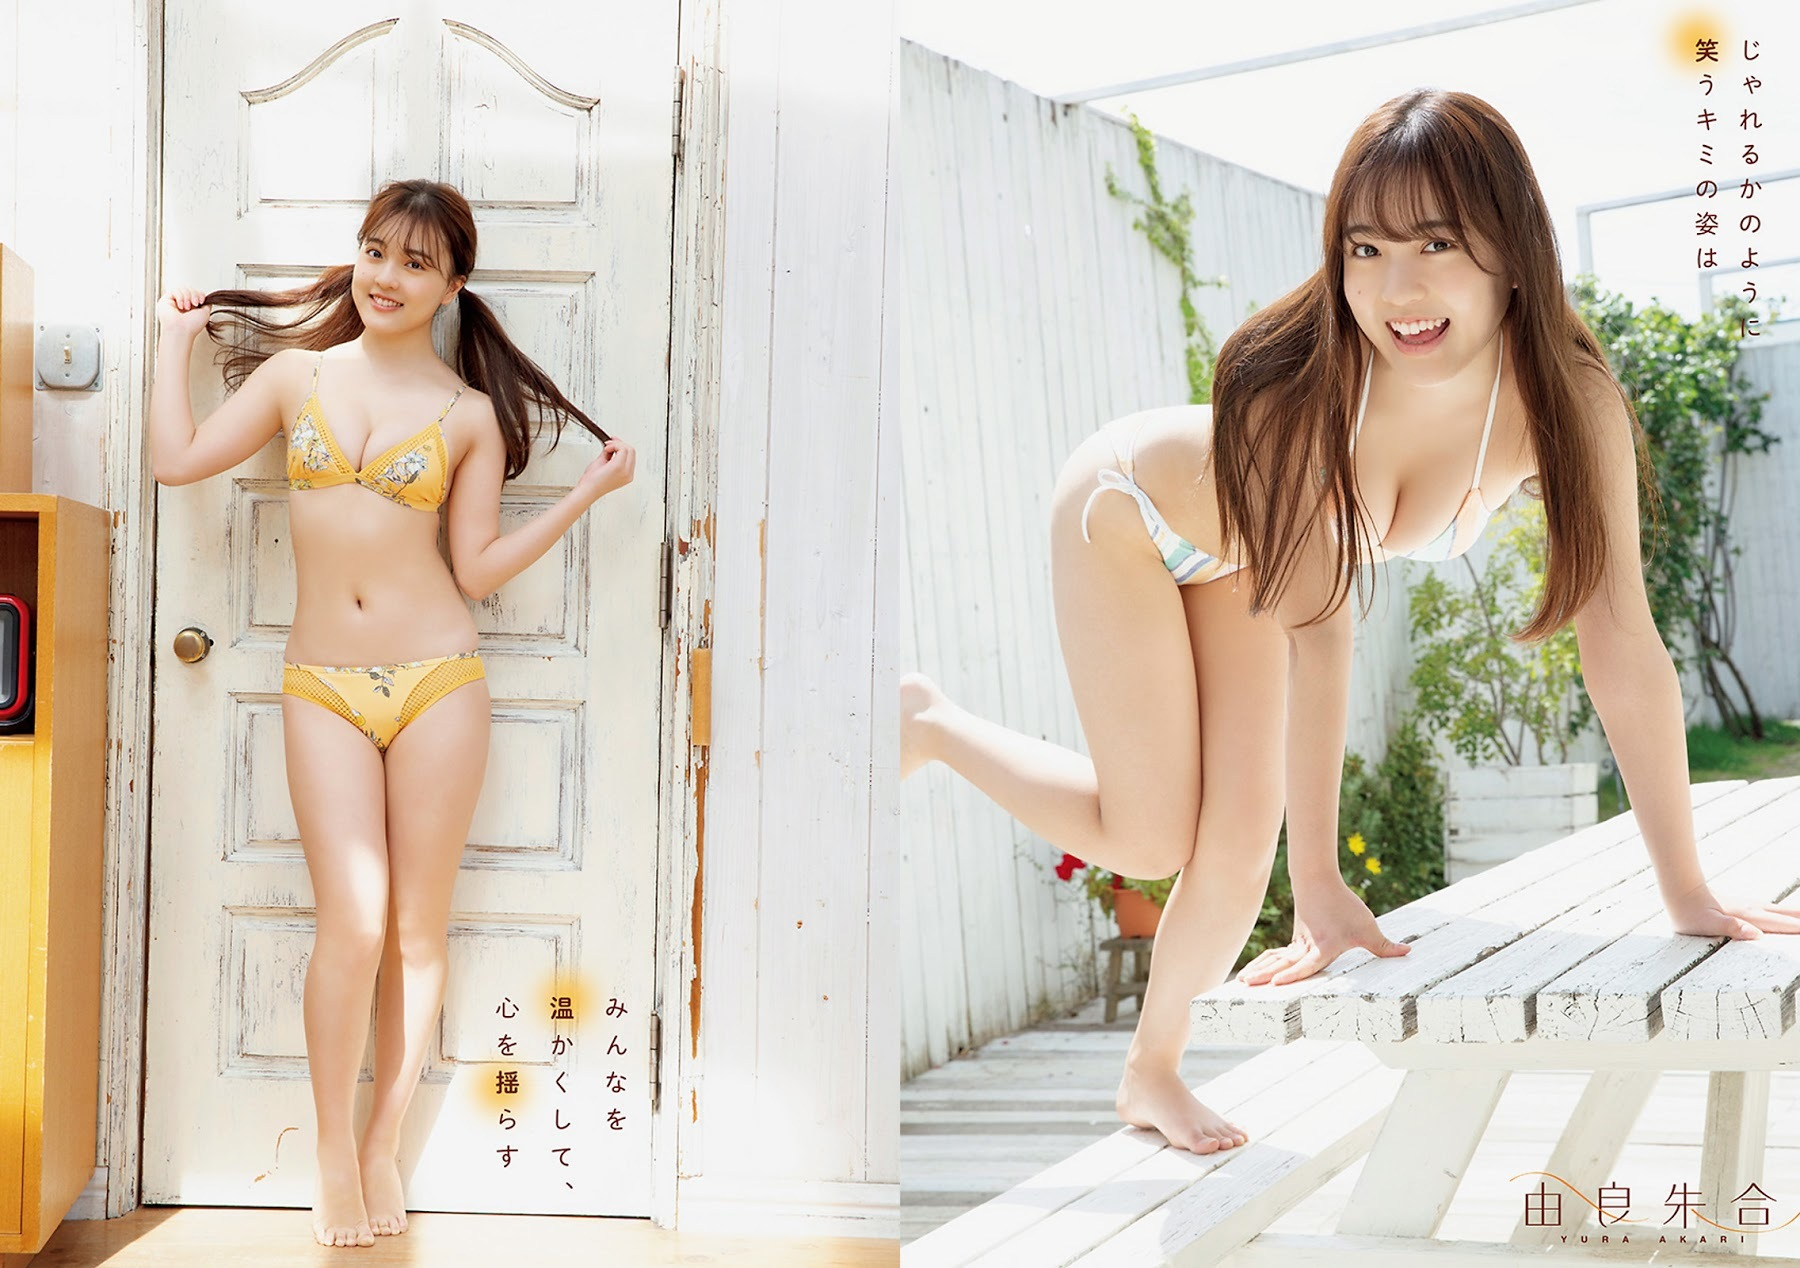 21yearold active female college student from Hiroshima Yura Shugo Swimsuit gravure 2020003